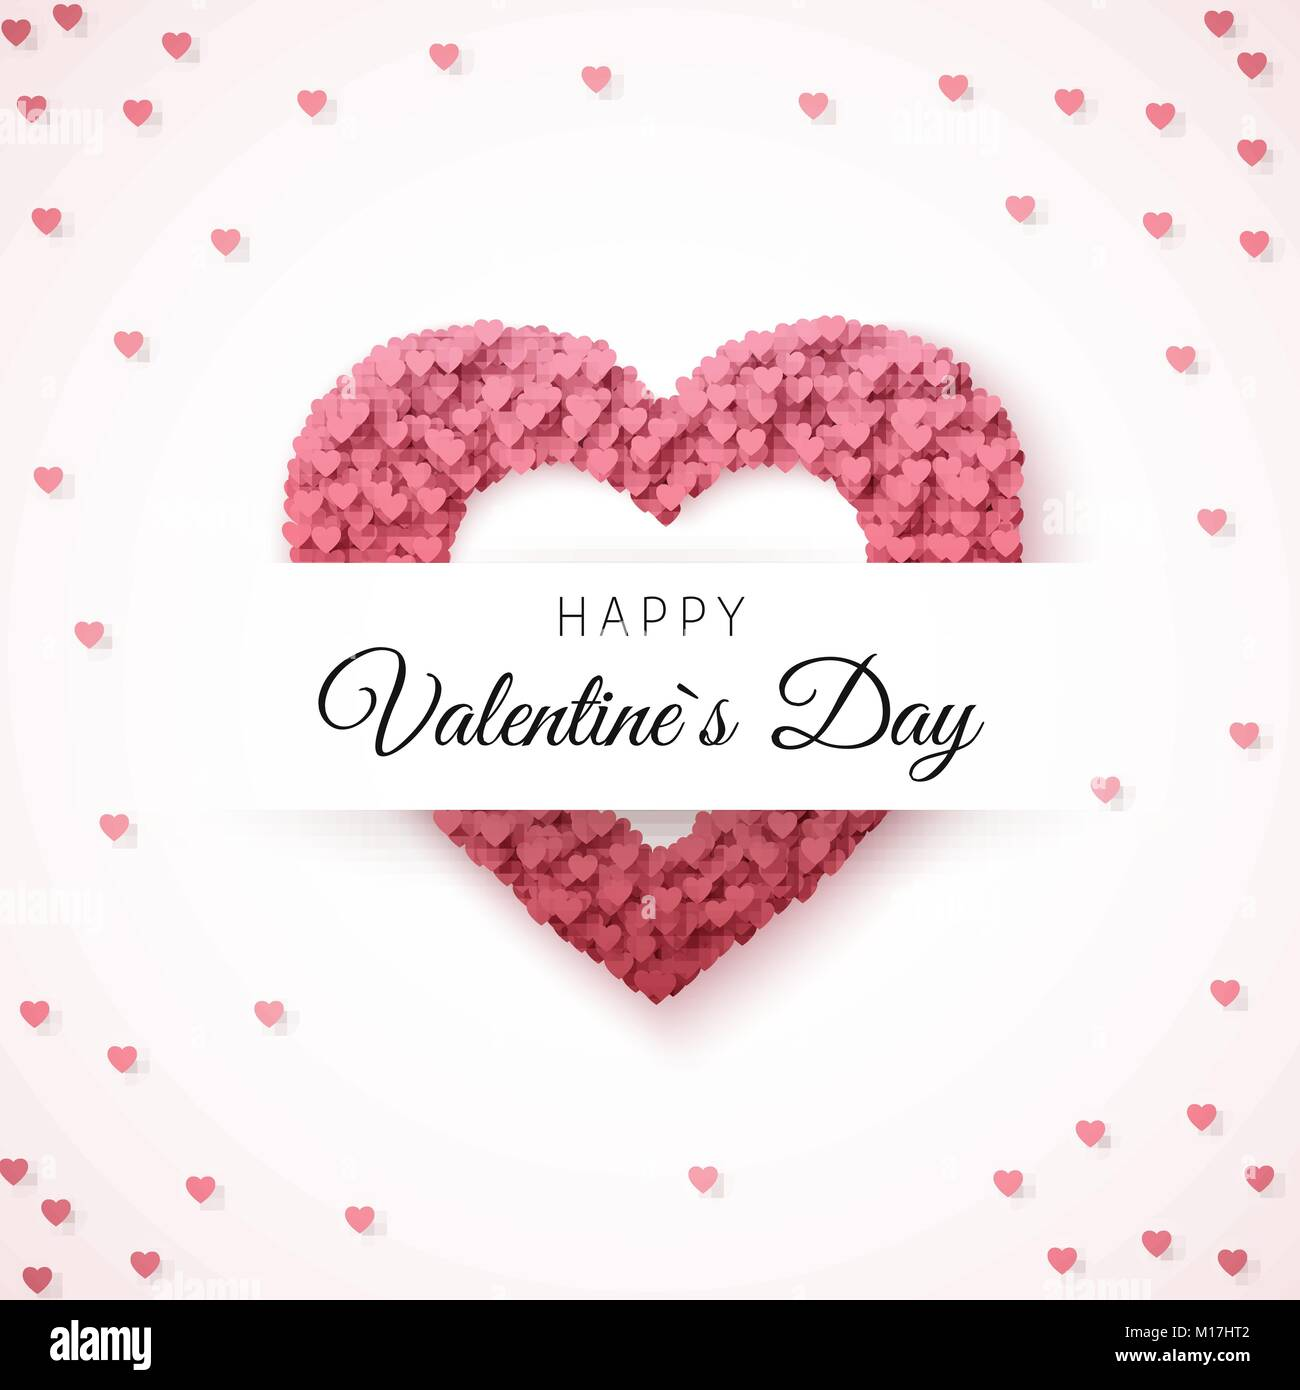 Happy Valentines Day Greeting Card Greeting Card Template Heart